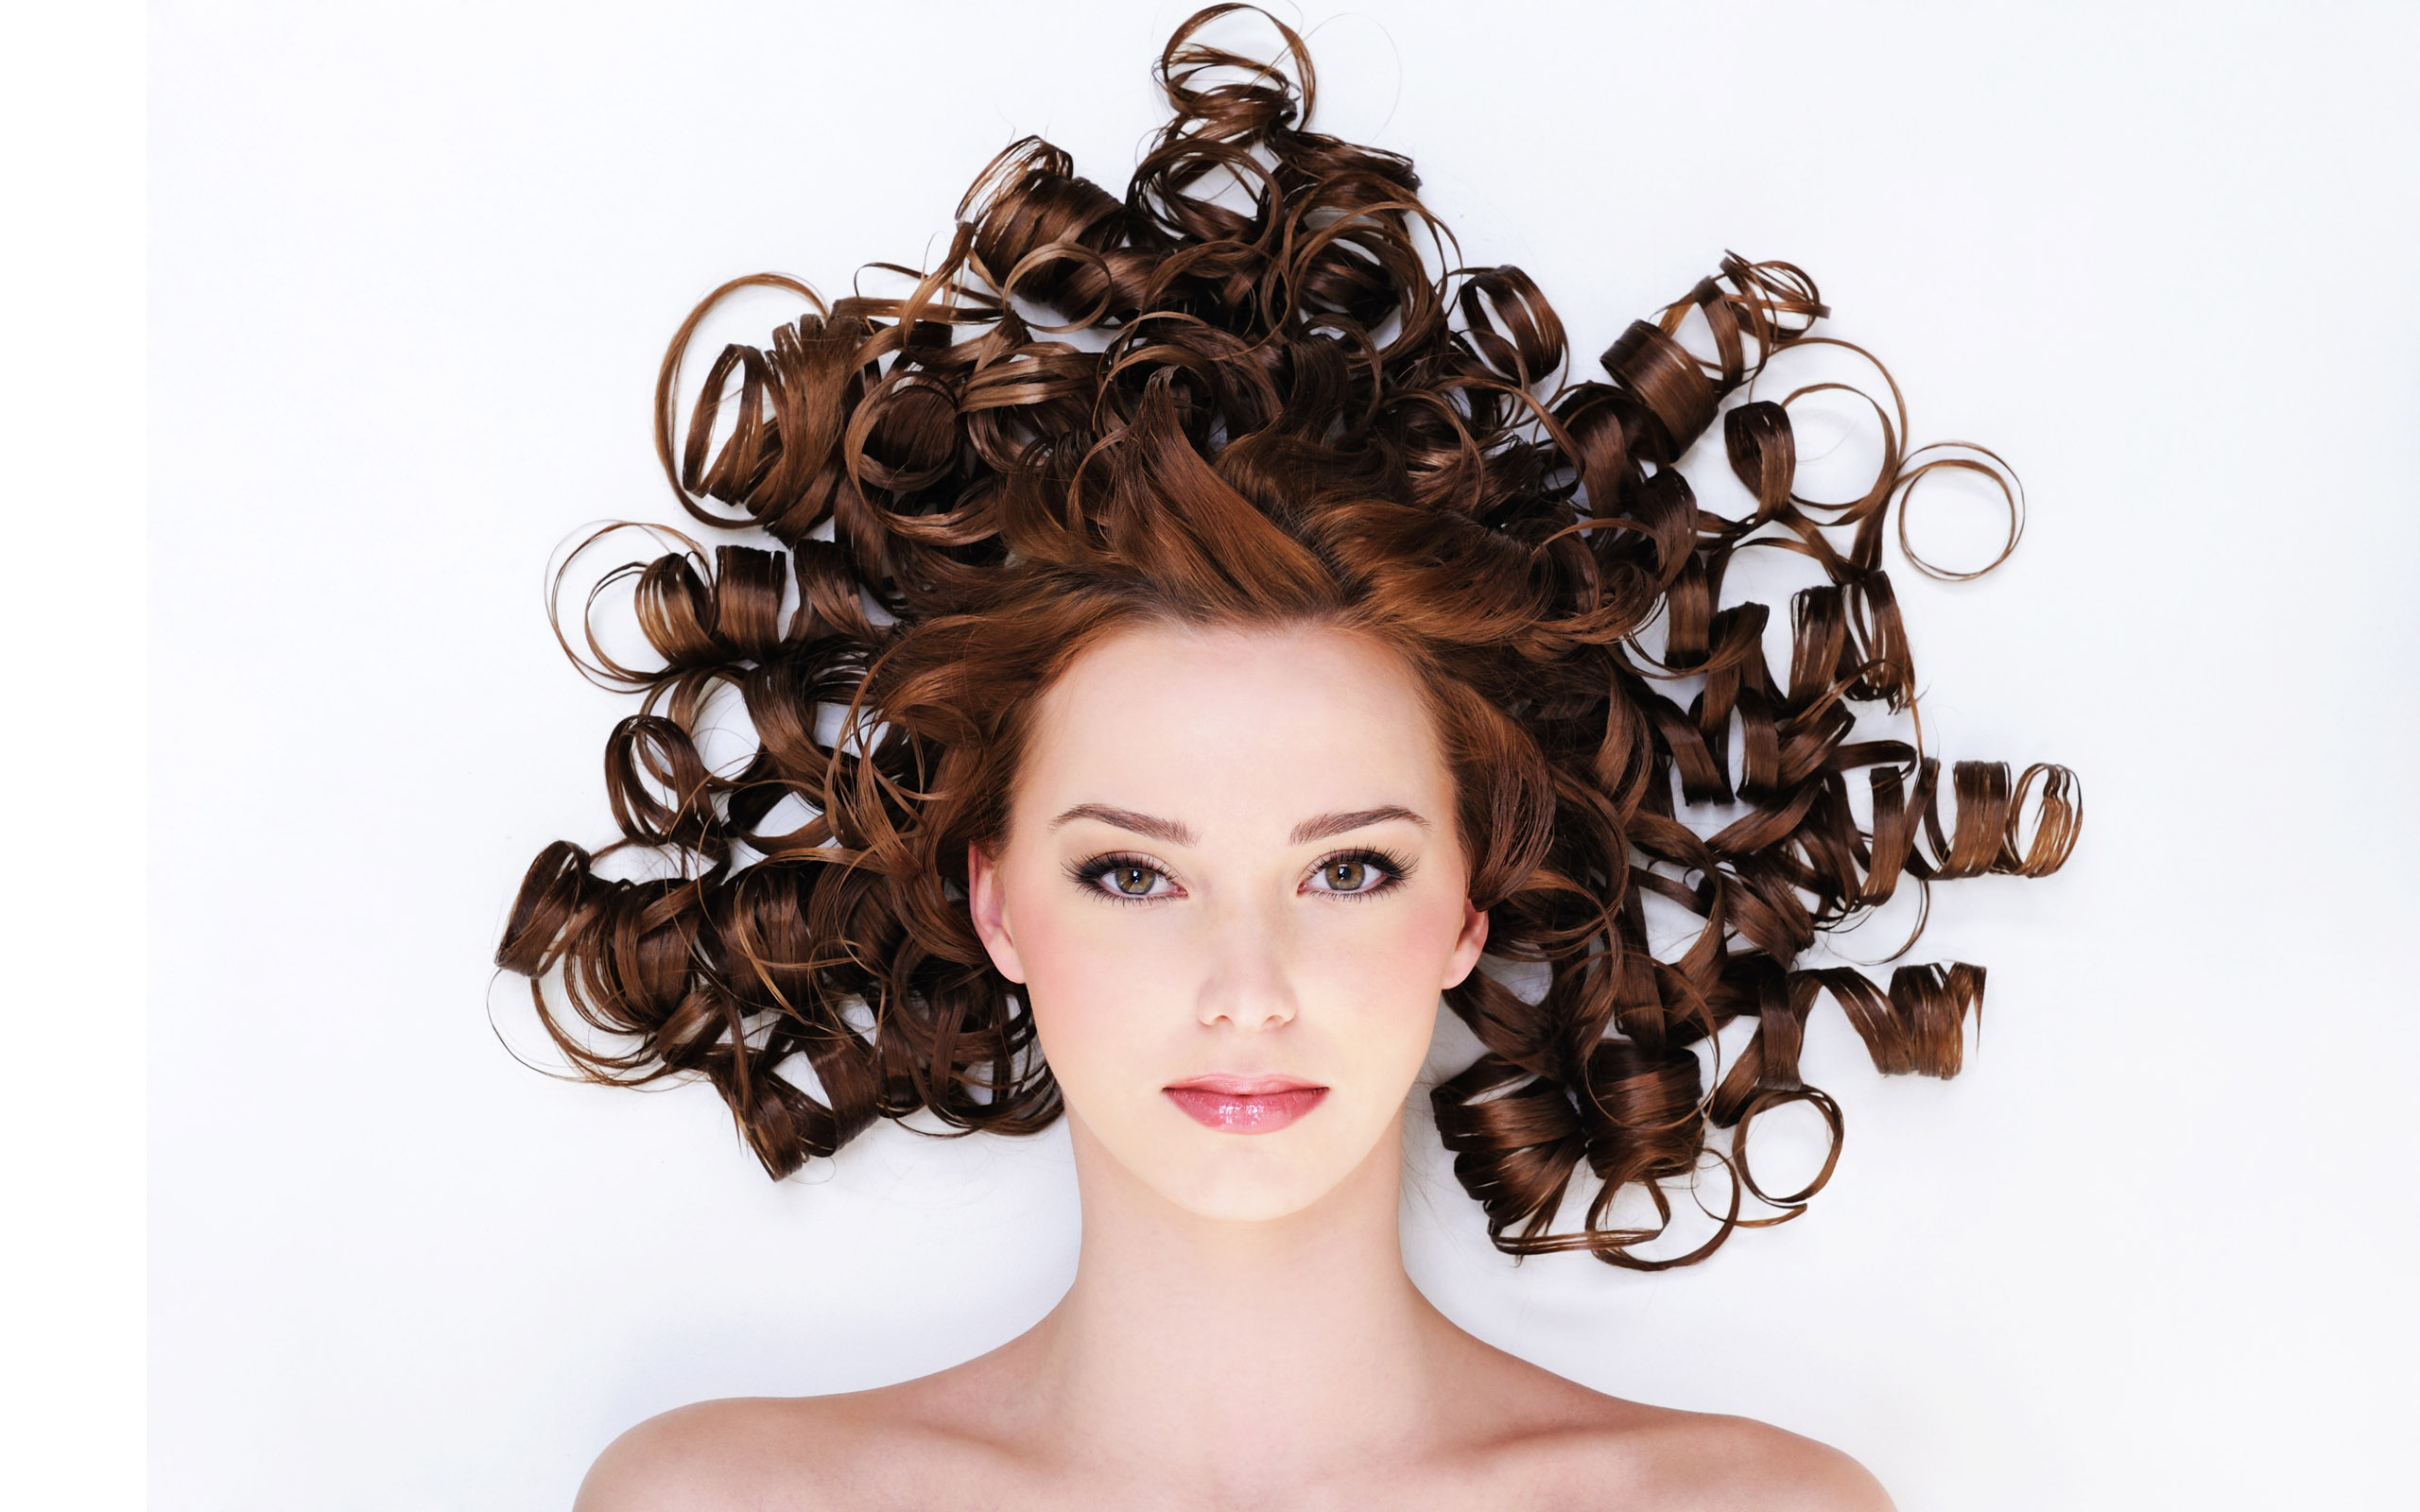 Hair Style Questions: 20 Questions To Ask A Guy You Like: 20 Awesome Things To